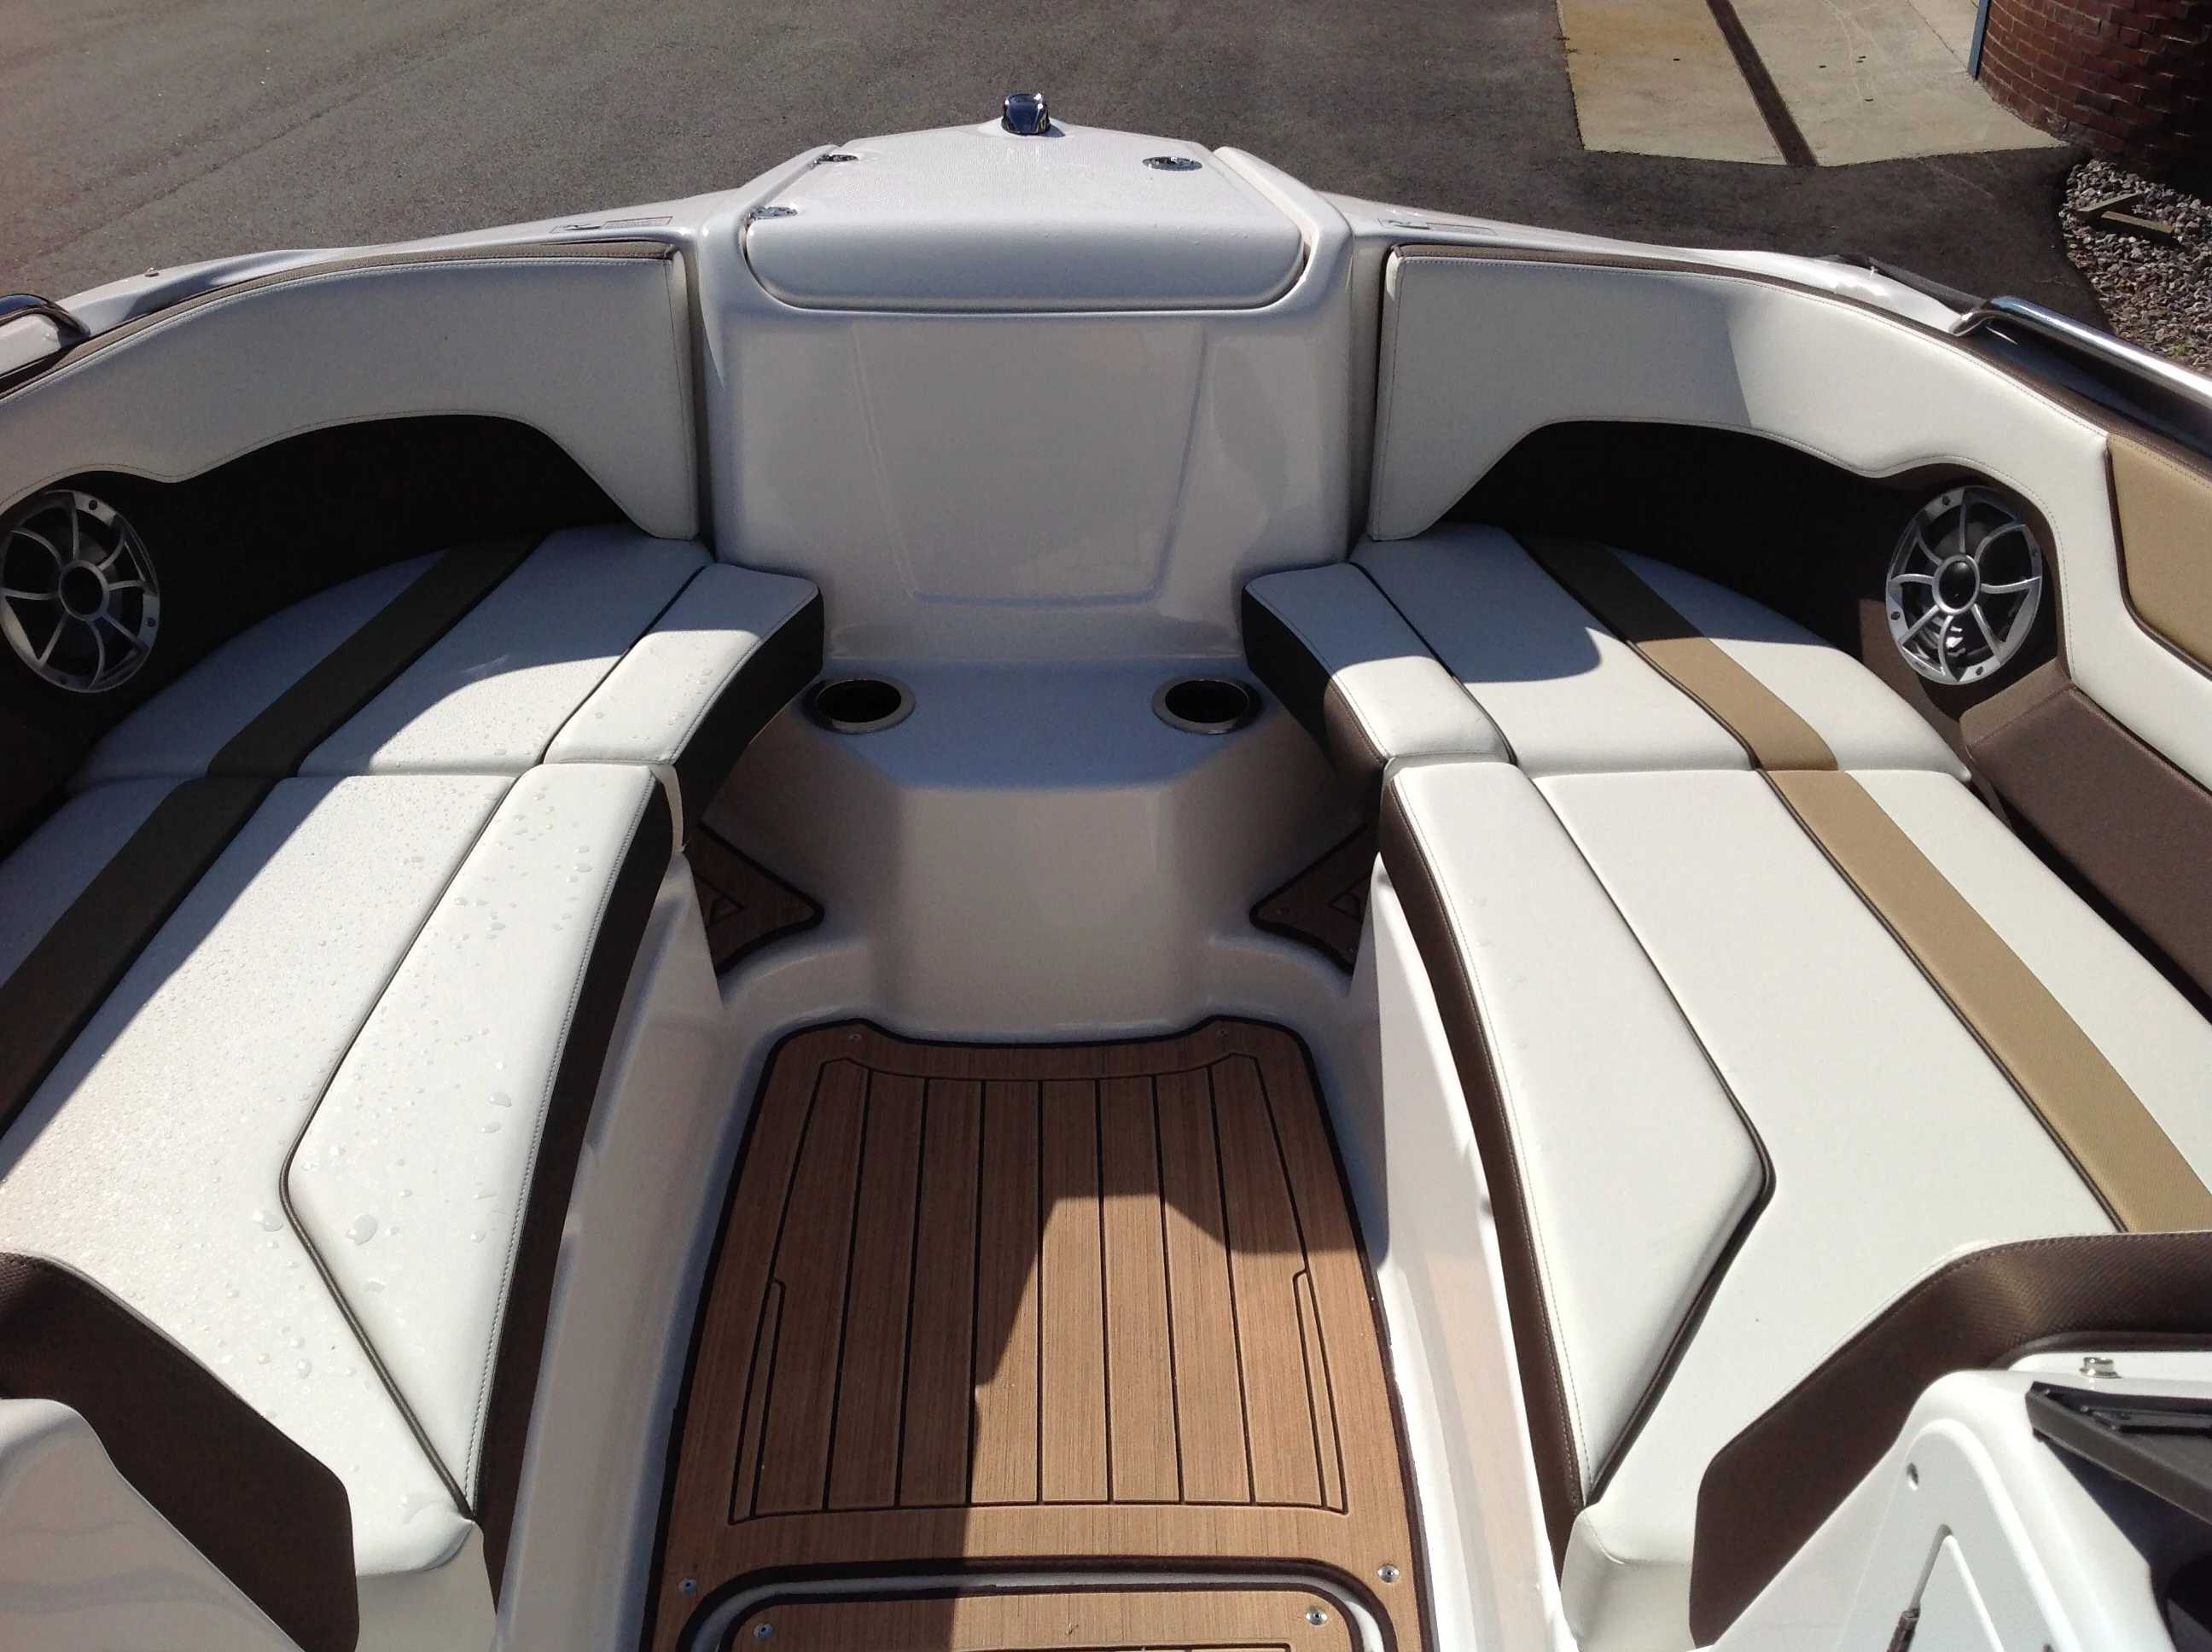 2021 Yamaha boat for sale, model of the boat is 212se & Image # 5 of 14